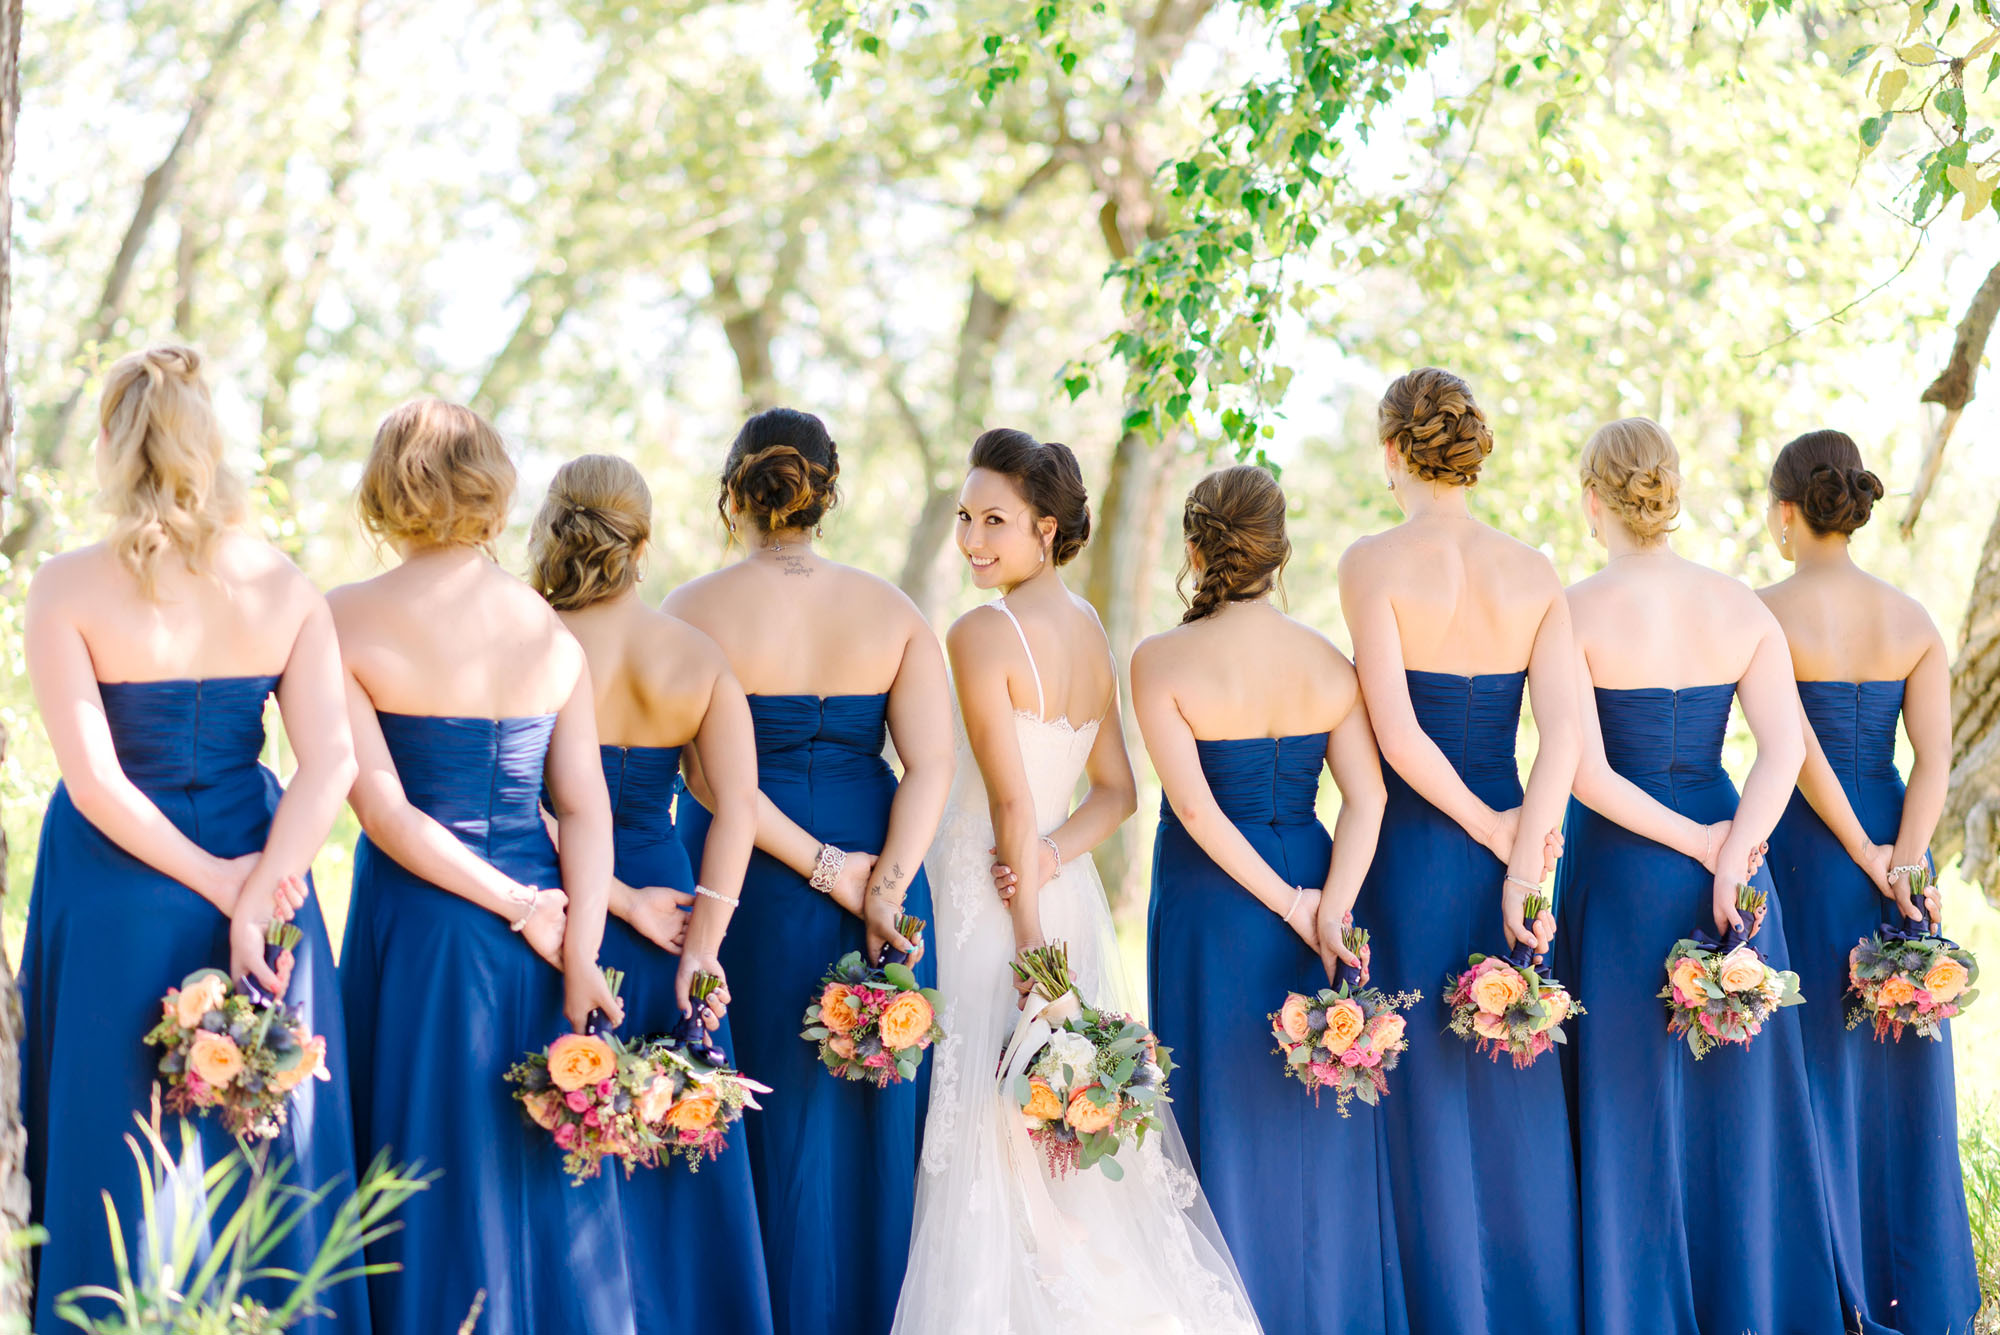 Things to consider when hiring a professional - wedding photography